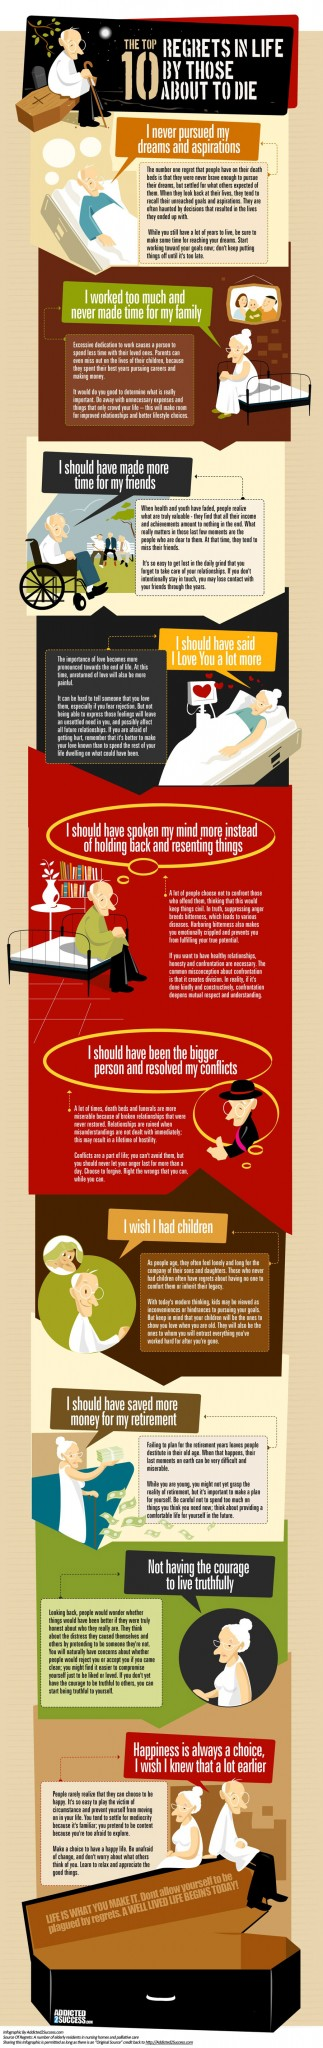 (Infographic)+The+Top+10+Regrets+In+Life+By+Those+About+To+Die-Addicted2Success